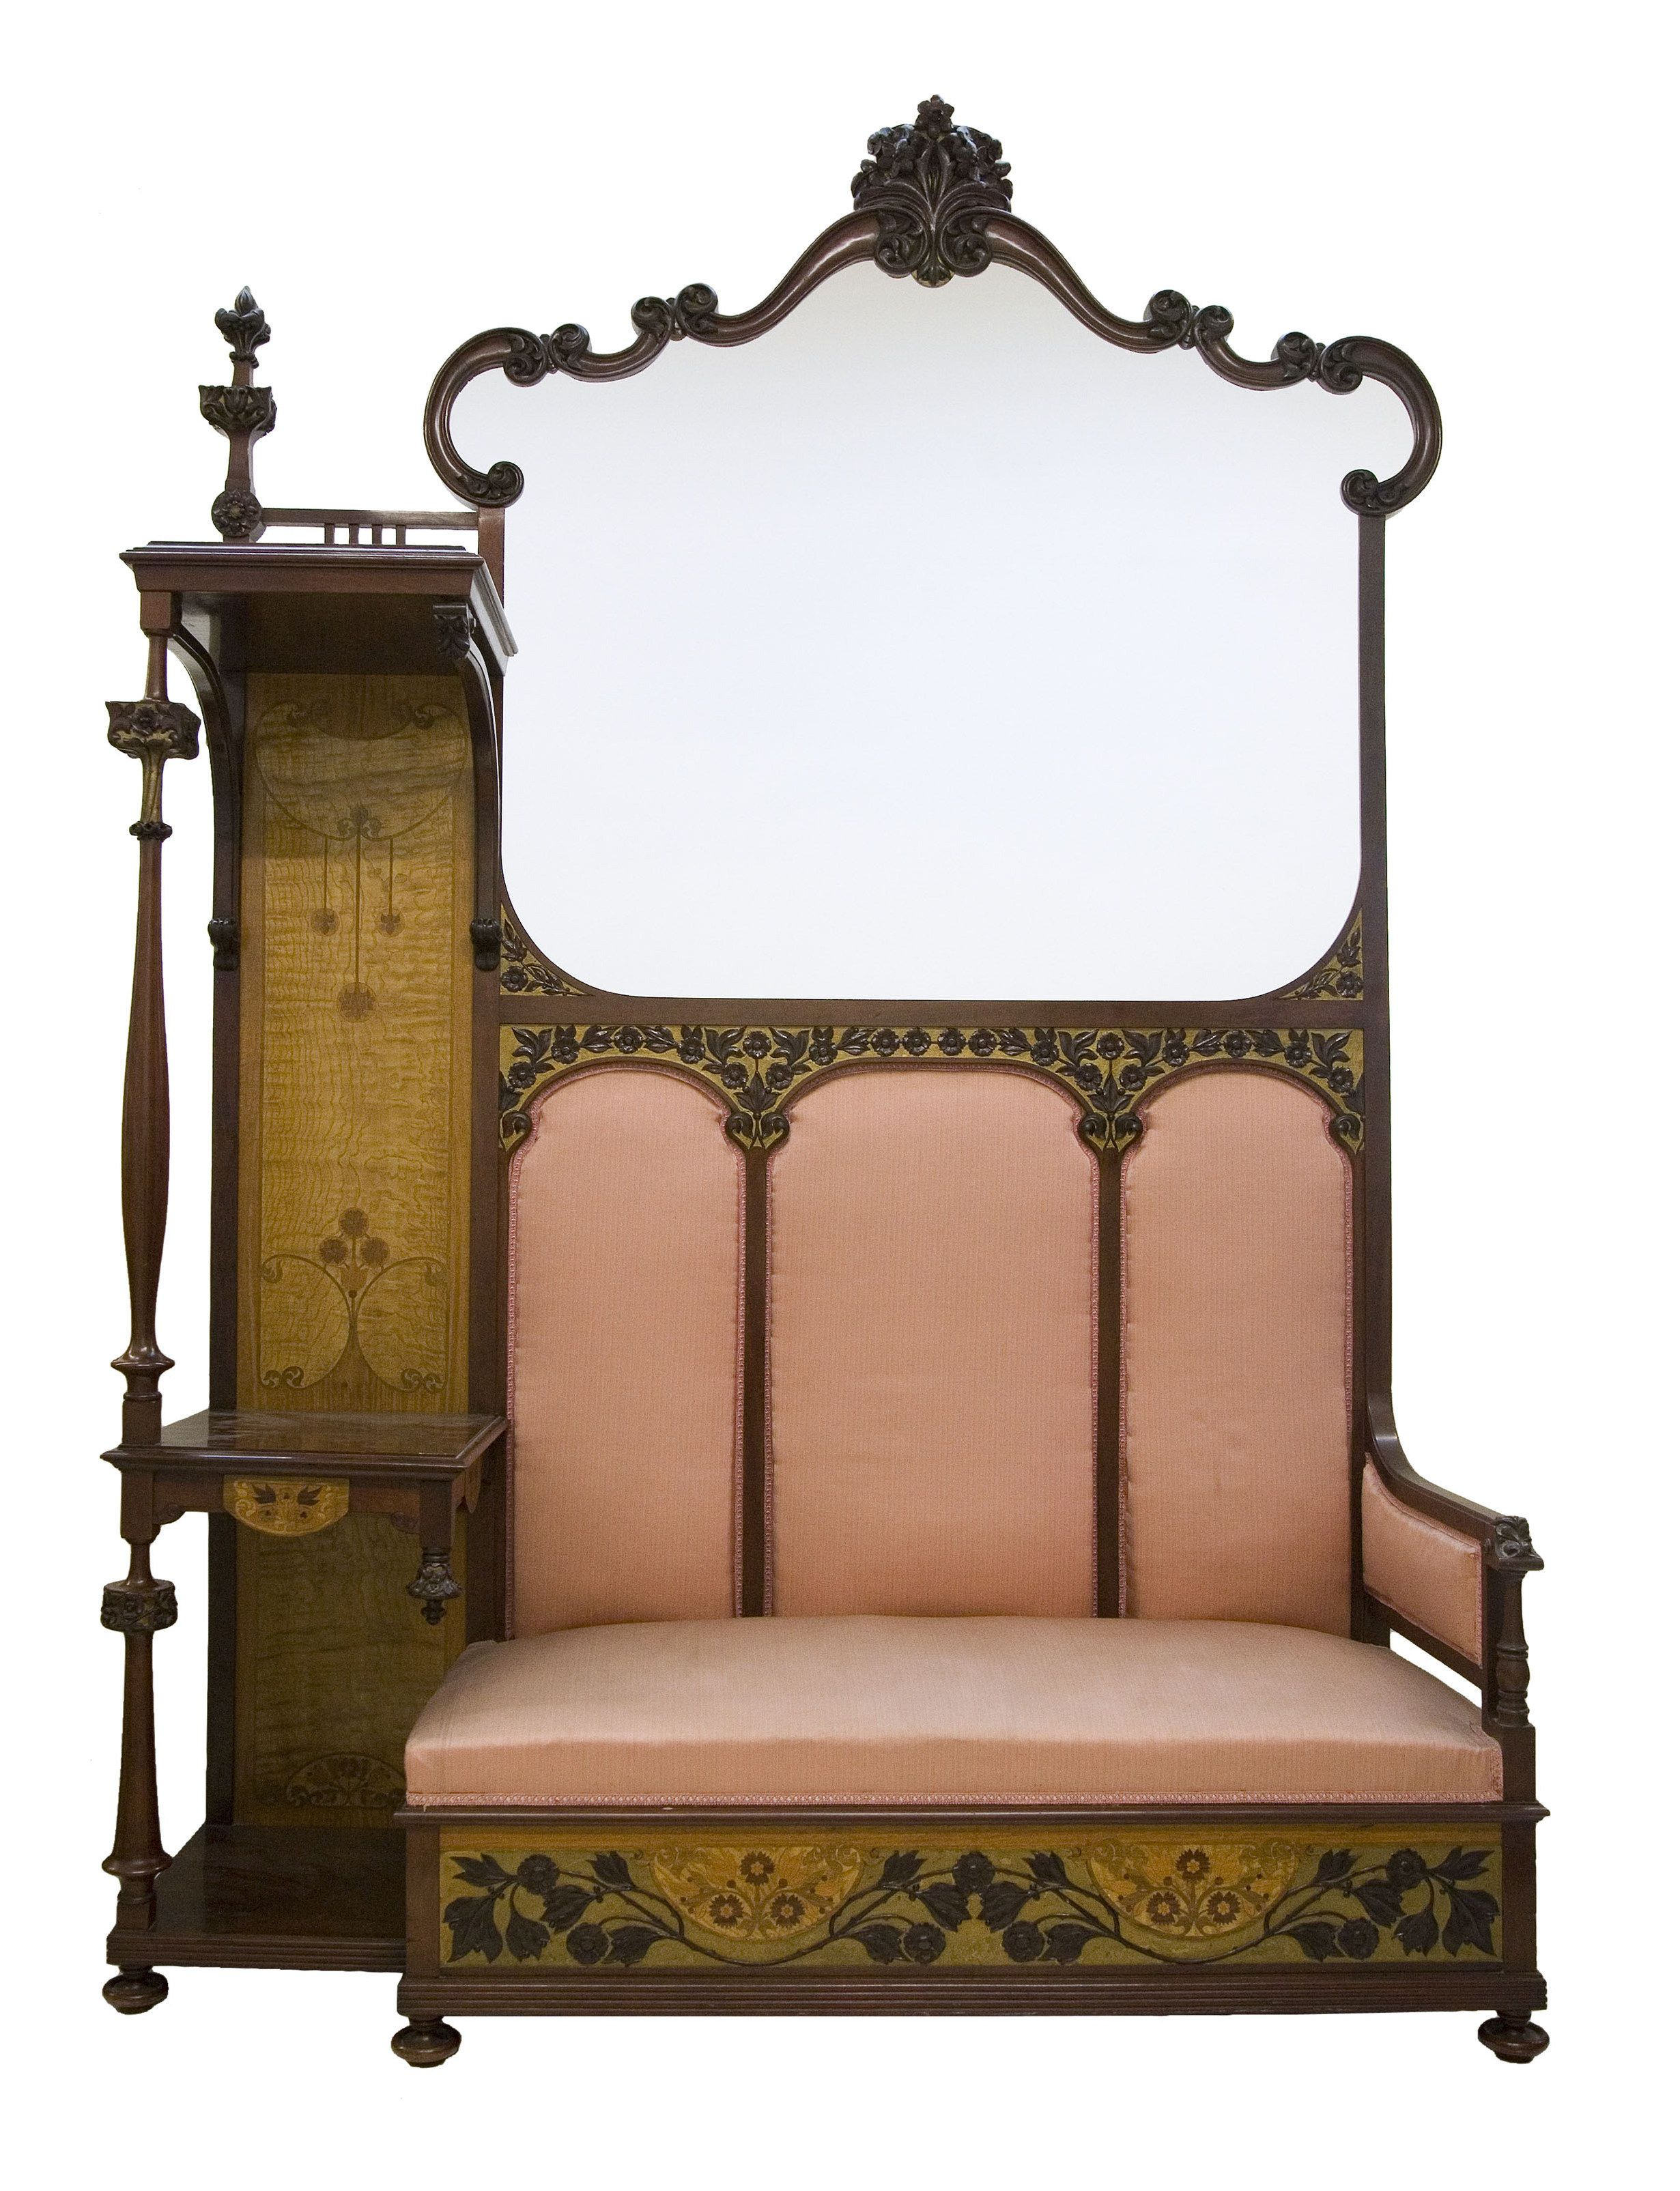 Gaspar homar sofa bench. mahogany with marquetry in lemon ash and